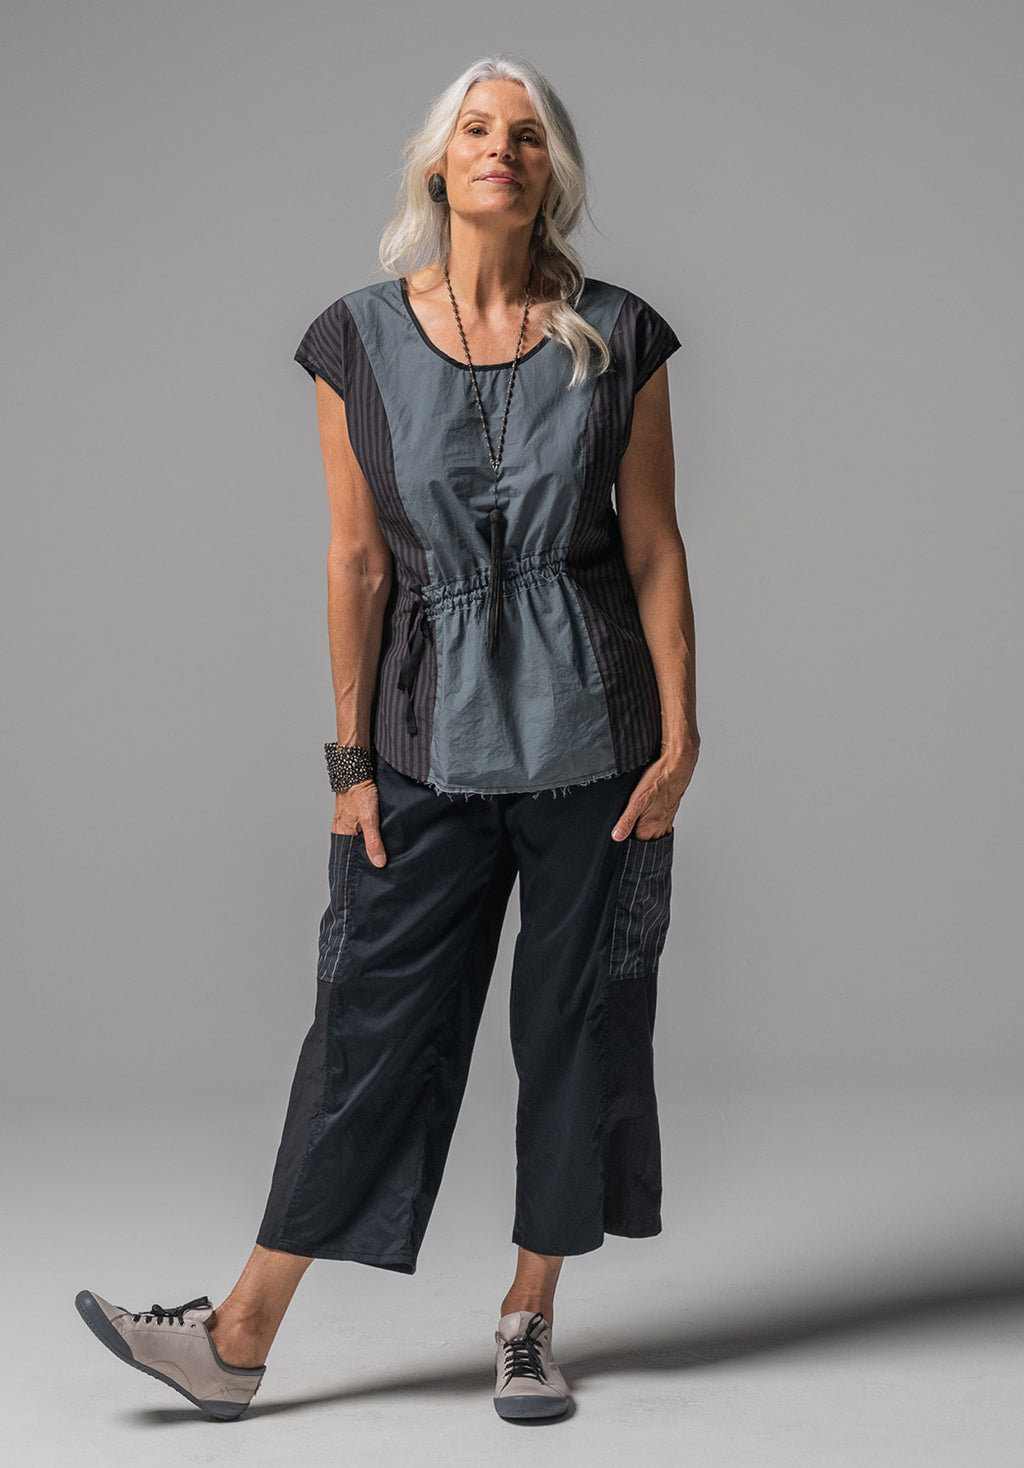 womens fashion online, womens pants online, ethical fashion australia, womens pants au, womens pants over 50, womens pants over 40, sustainable pants online